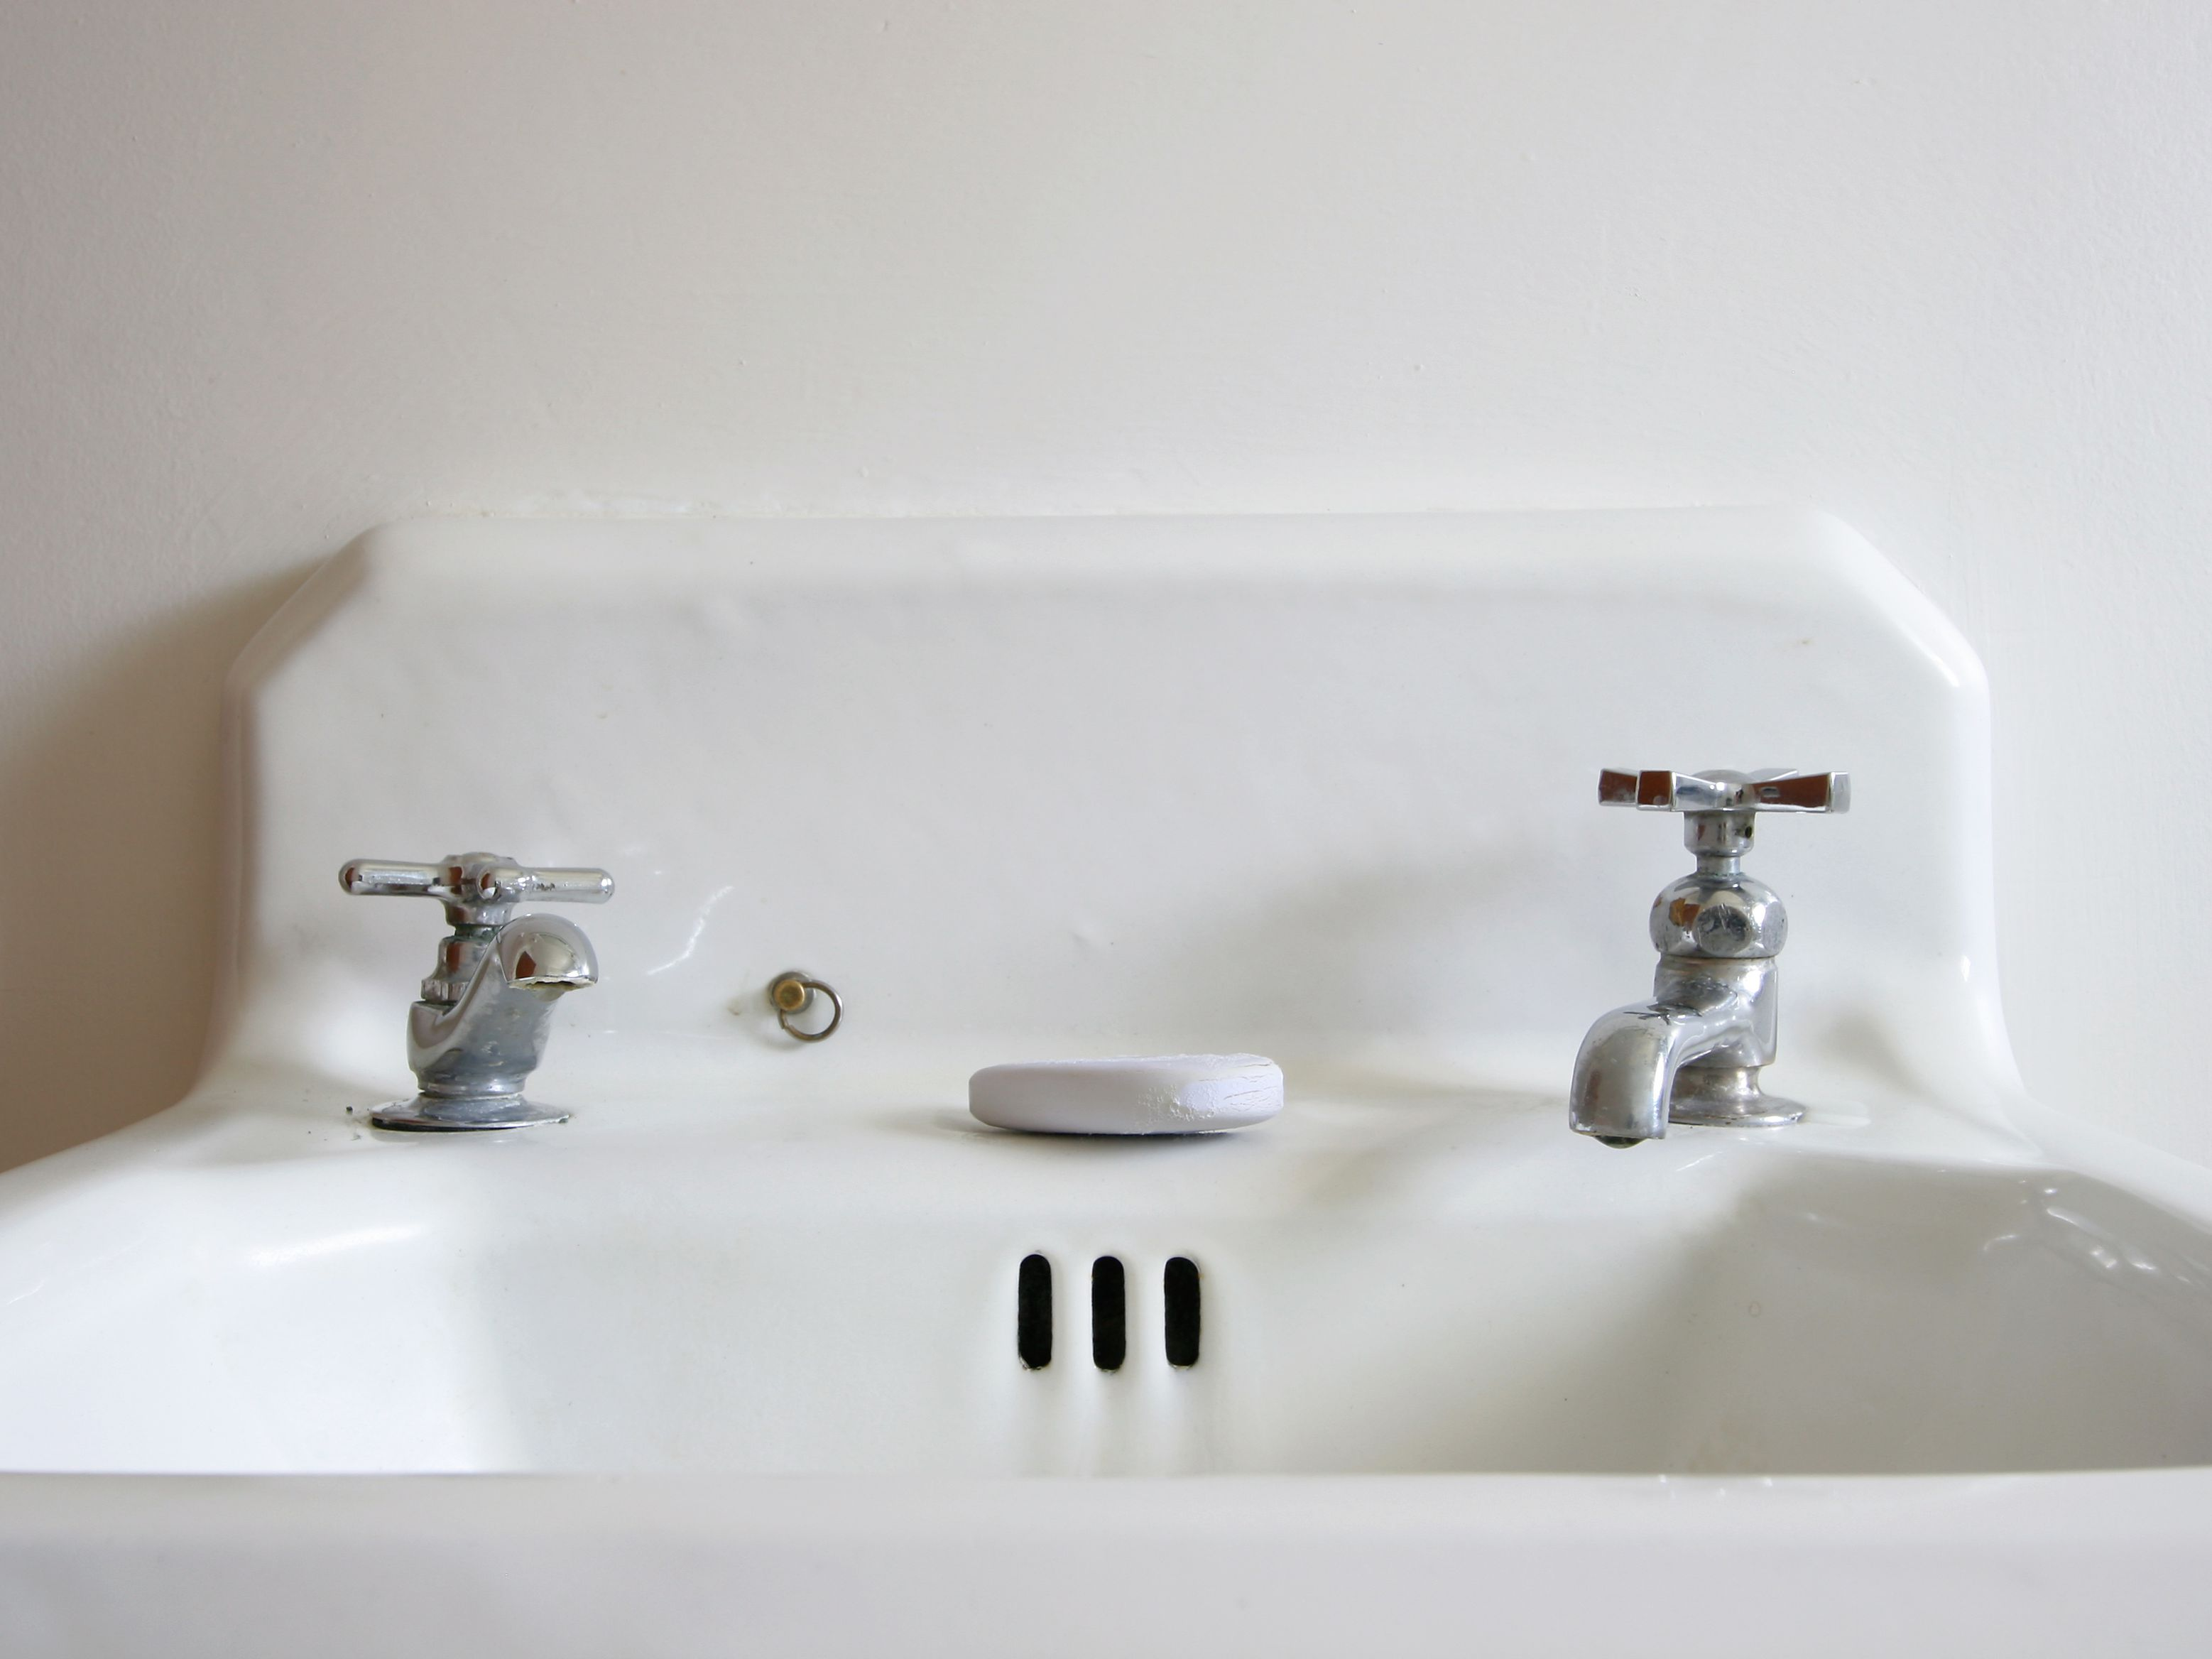 How To Install An Aav Air Admittance Valve For A Sink